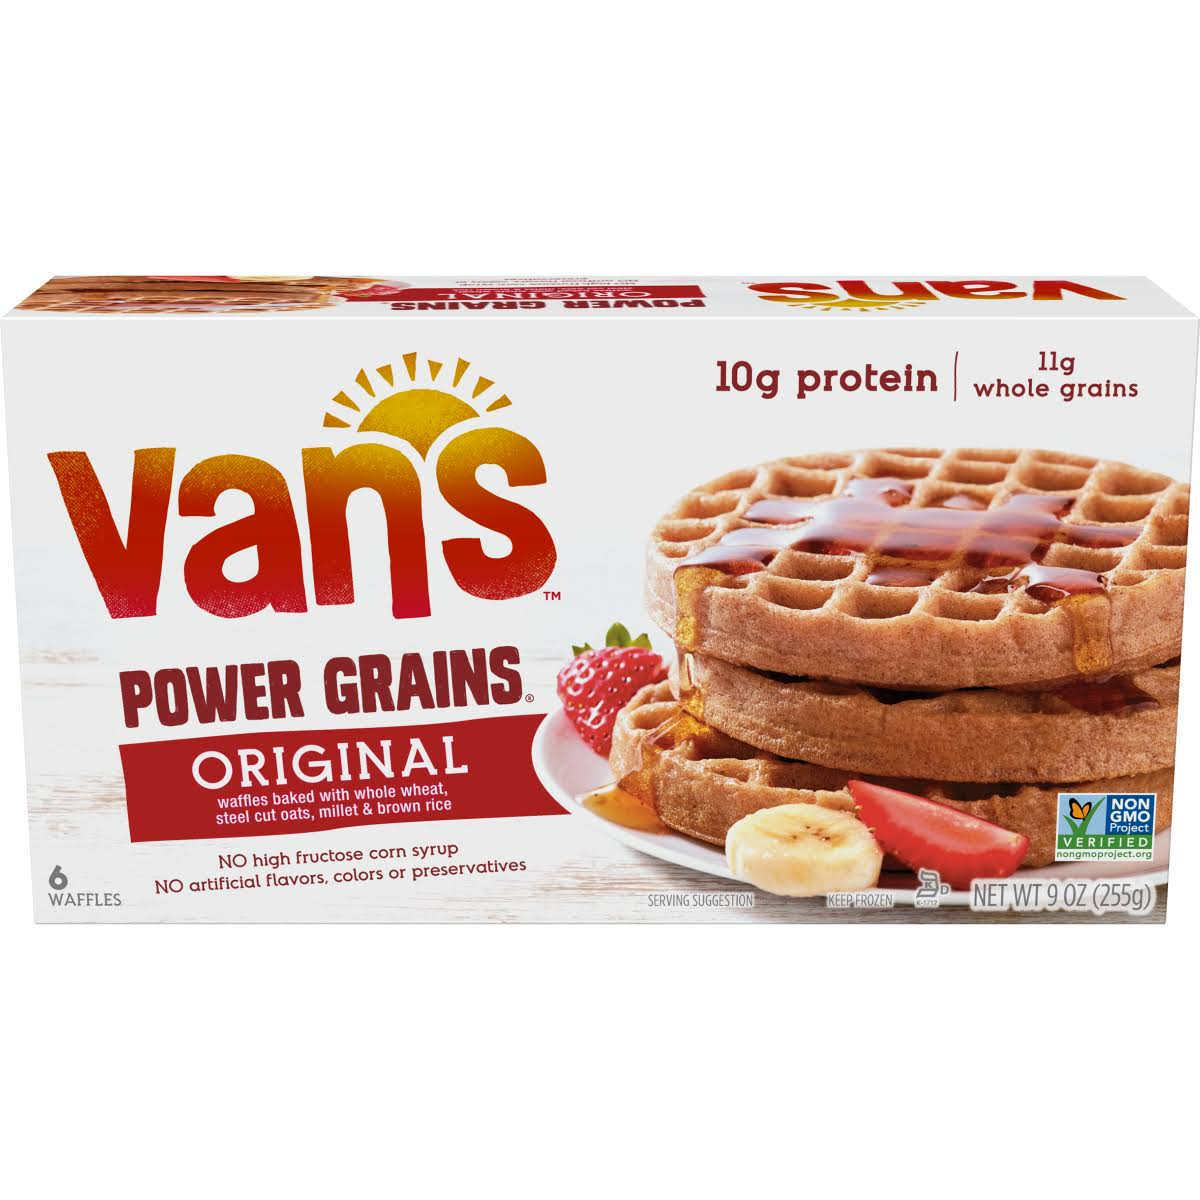 Vans Waffles, Power Grains, Original - 6 waffles, 9 oz